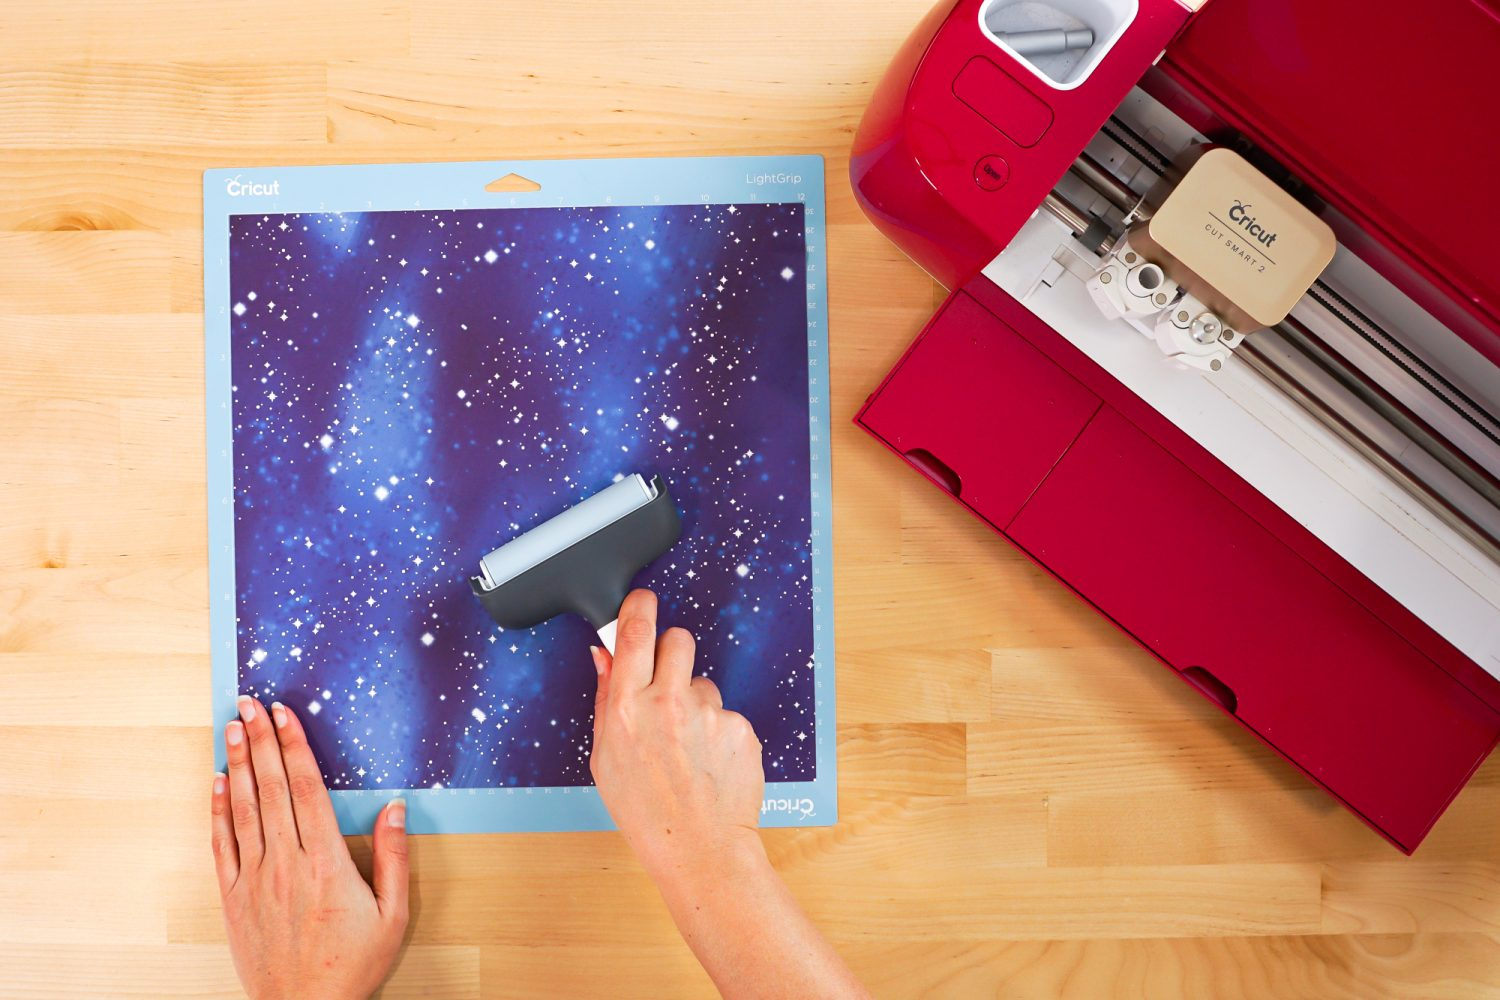 Use a brayer to press down the transfer sheet on the mat